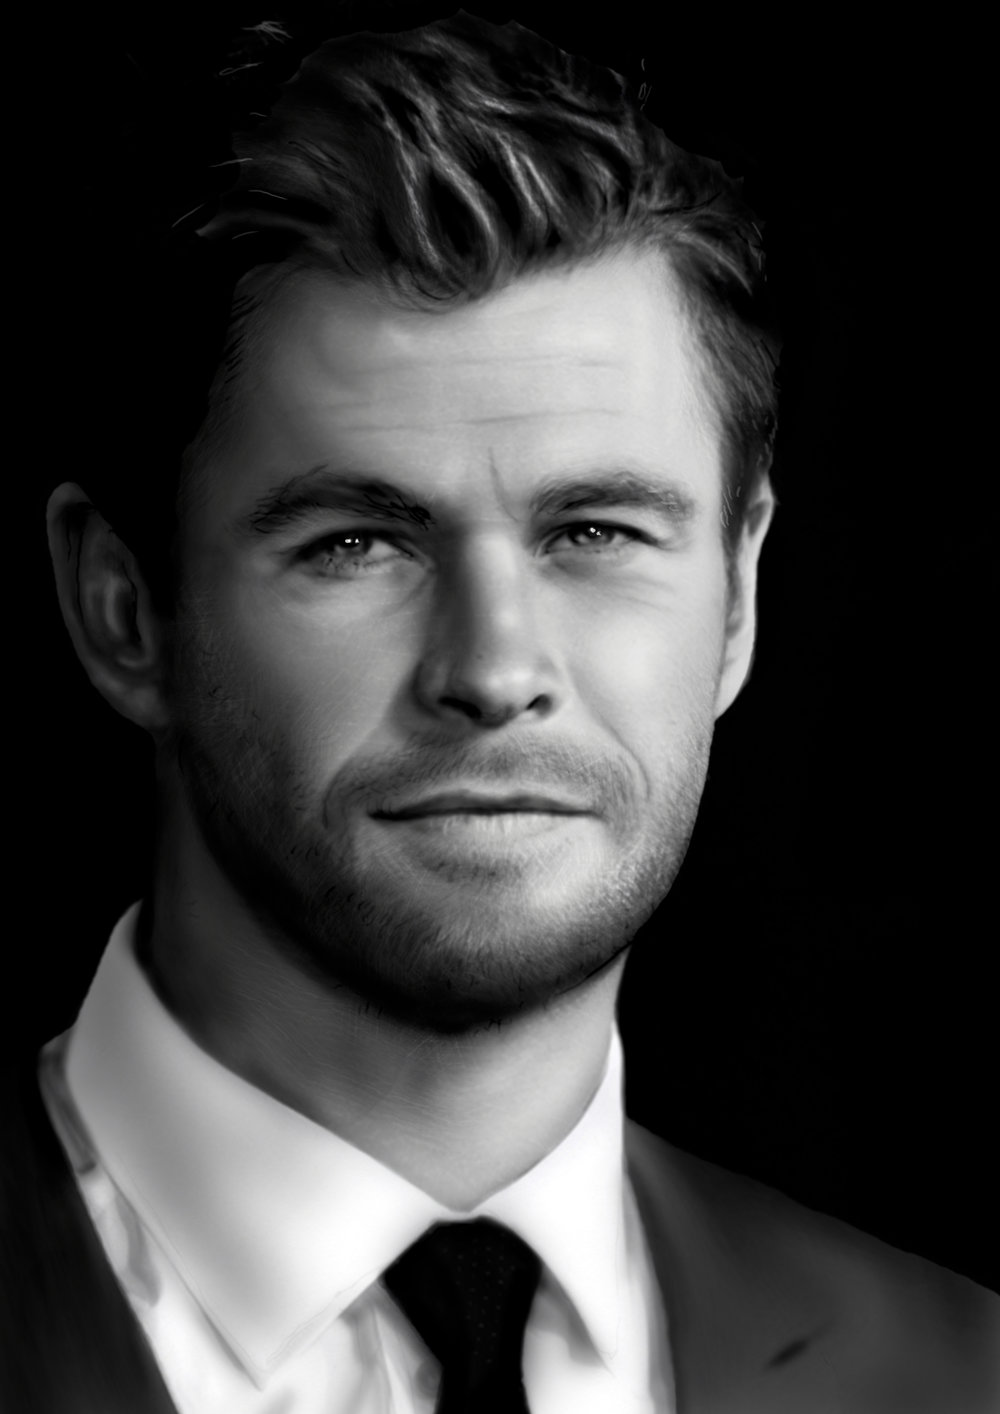 Chris Hemsworth portrait copy.jpg